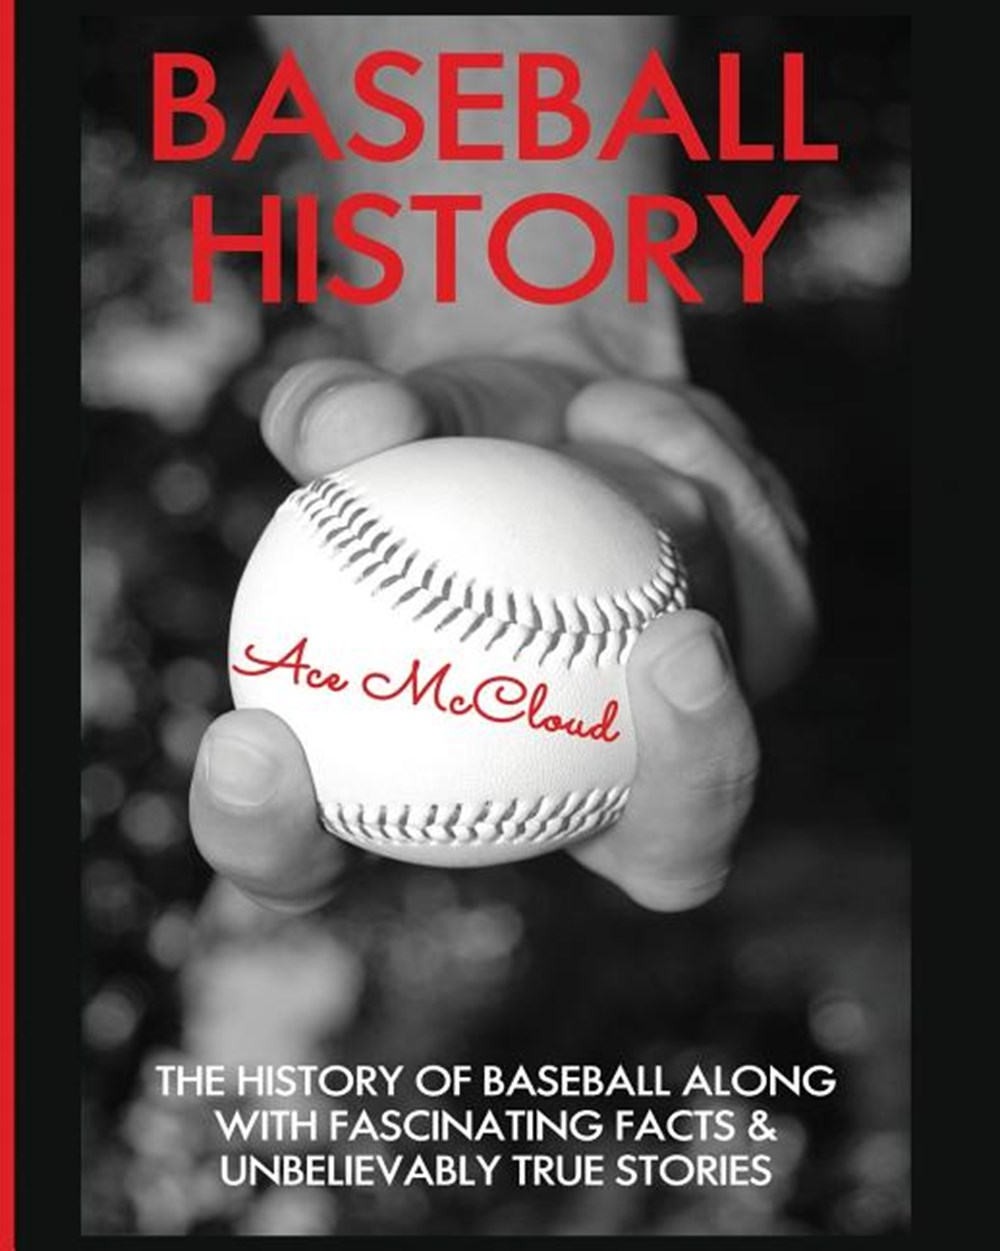 Baseball History The History of Baseball Along With Fascinating Facts & Unbelievably True Stories